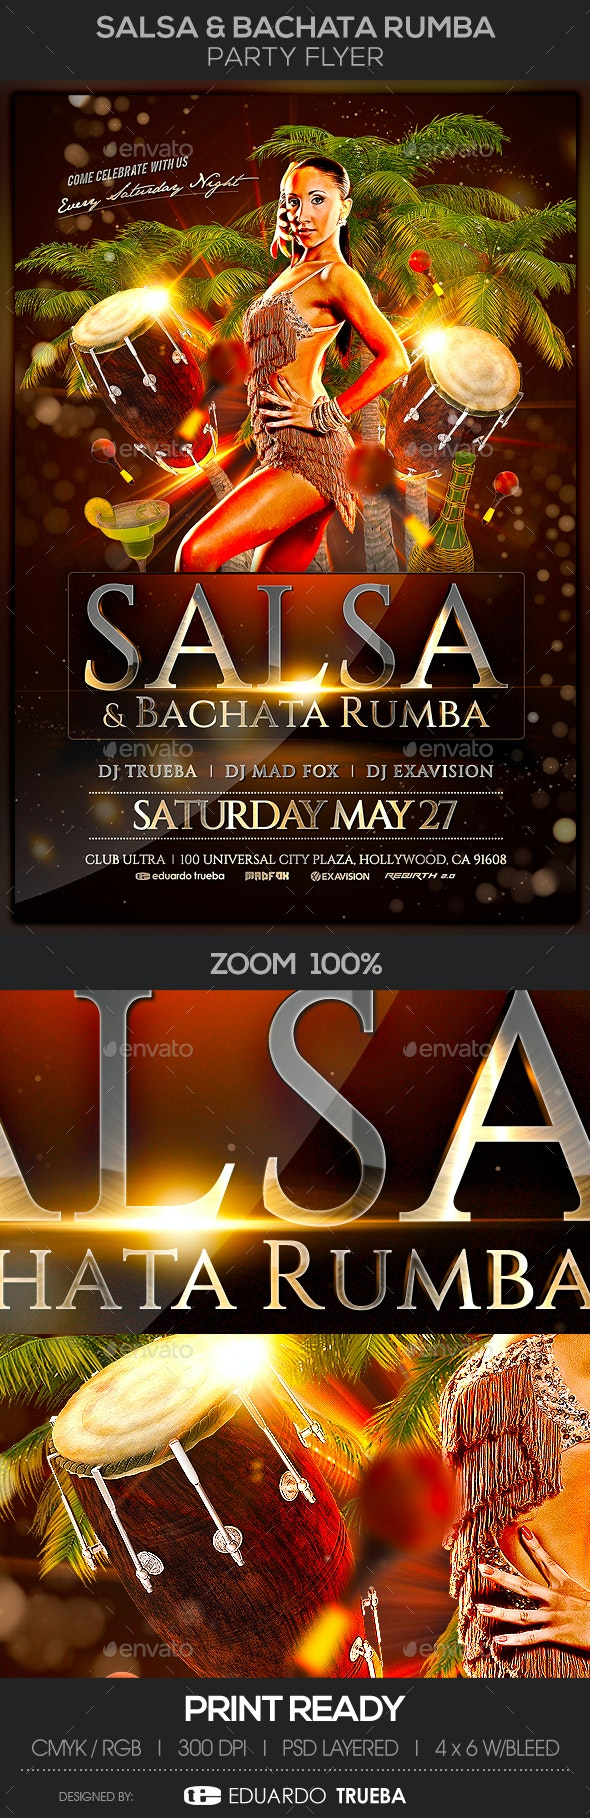 Salsa & Bachata Rumba Party Flyer - Events Flyers